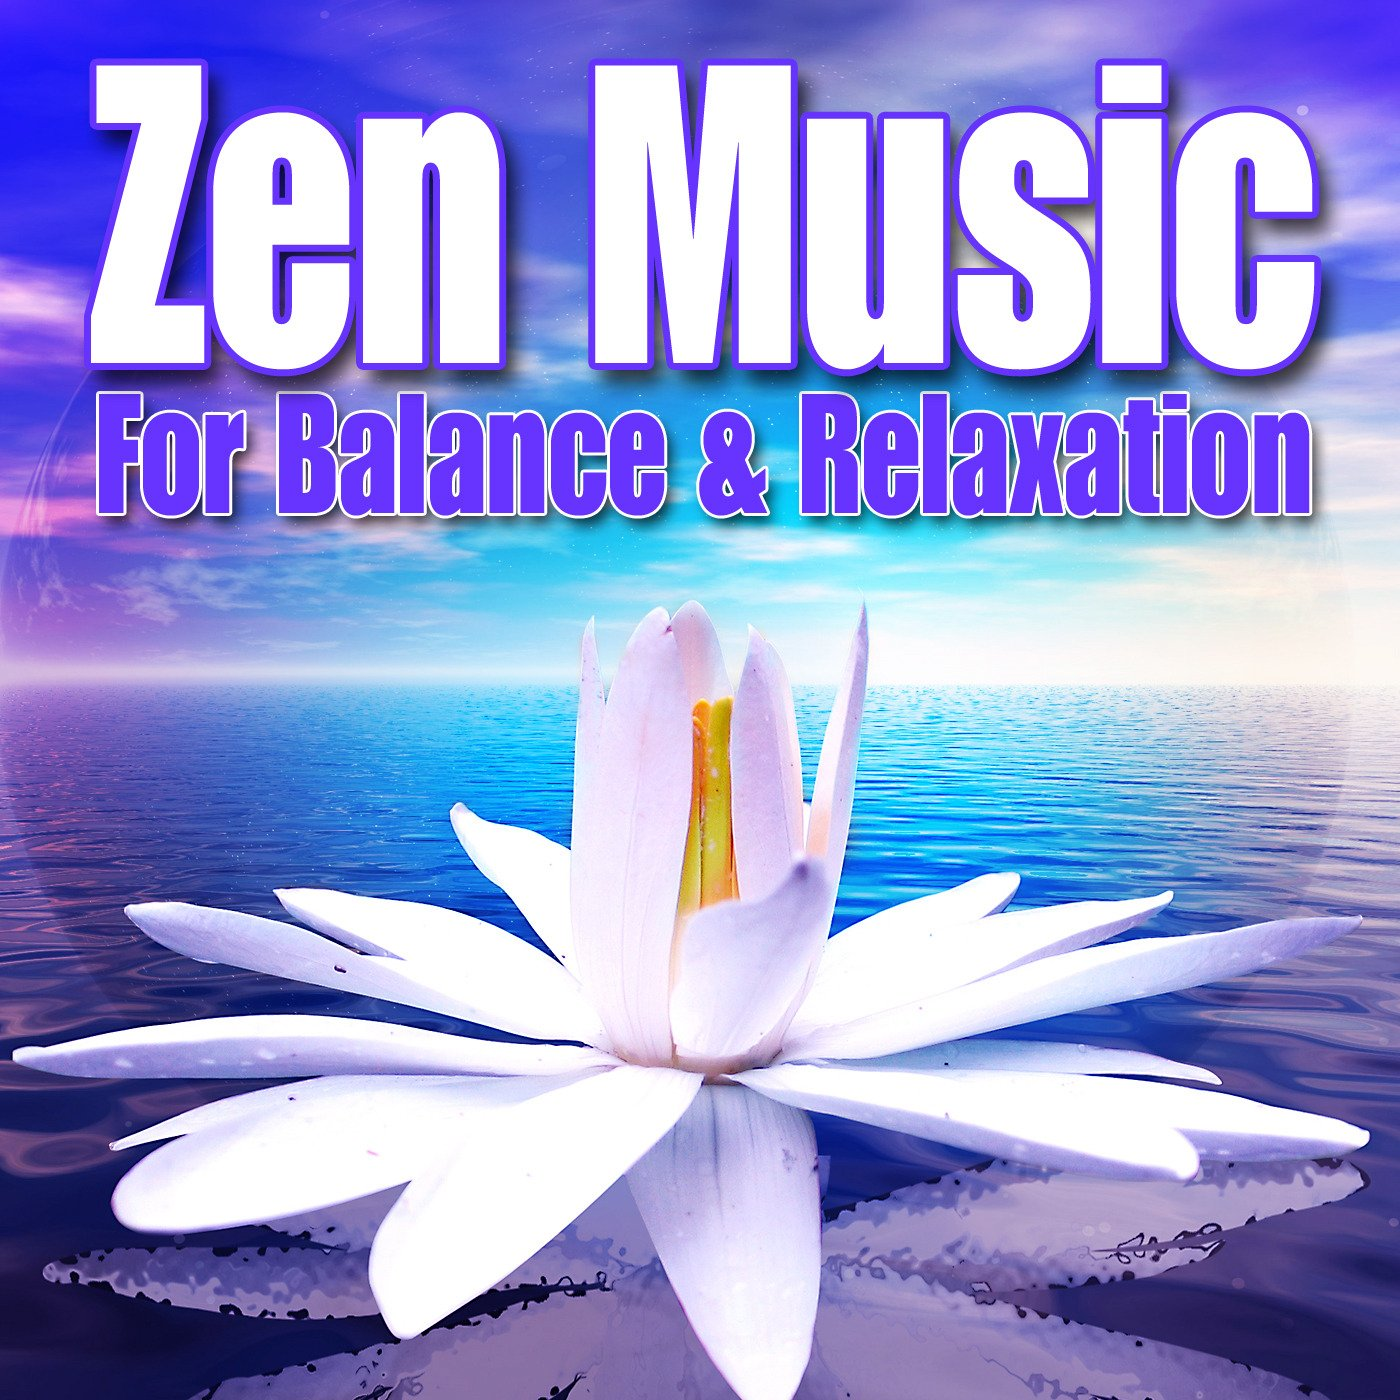 zen music for balance and relaxation nature sounds nature music listen and discover music at. Black Bedroom Furniture Sets. Home Design Ideas